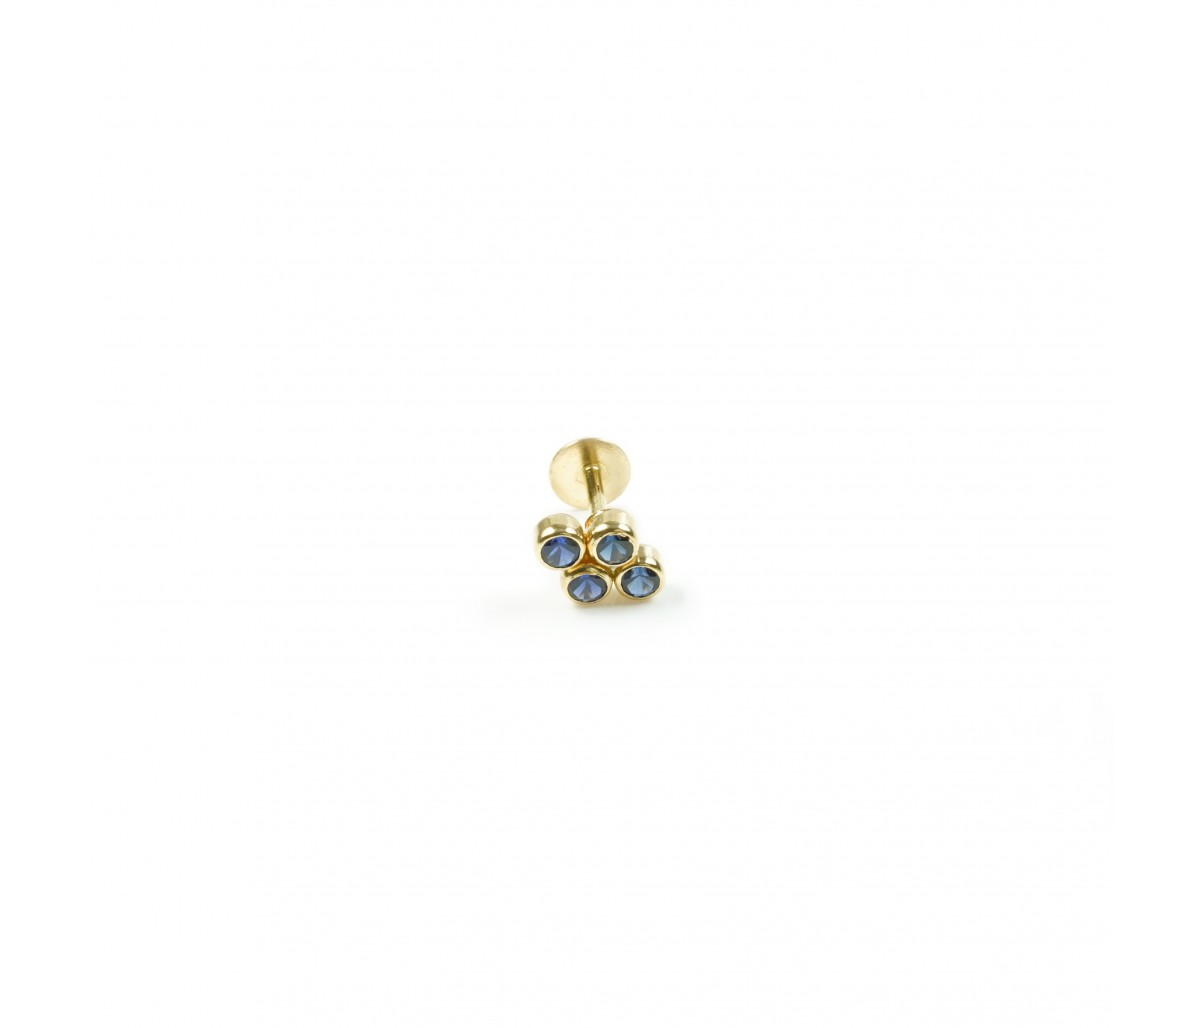 Oti 18k gold piercing